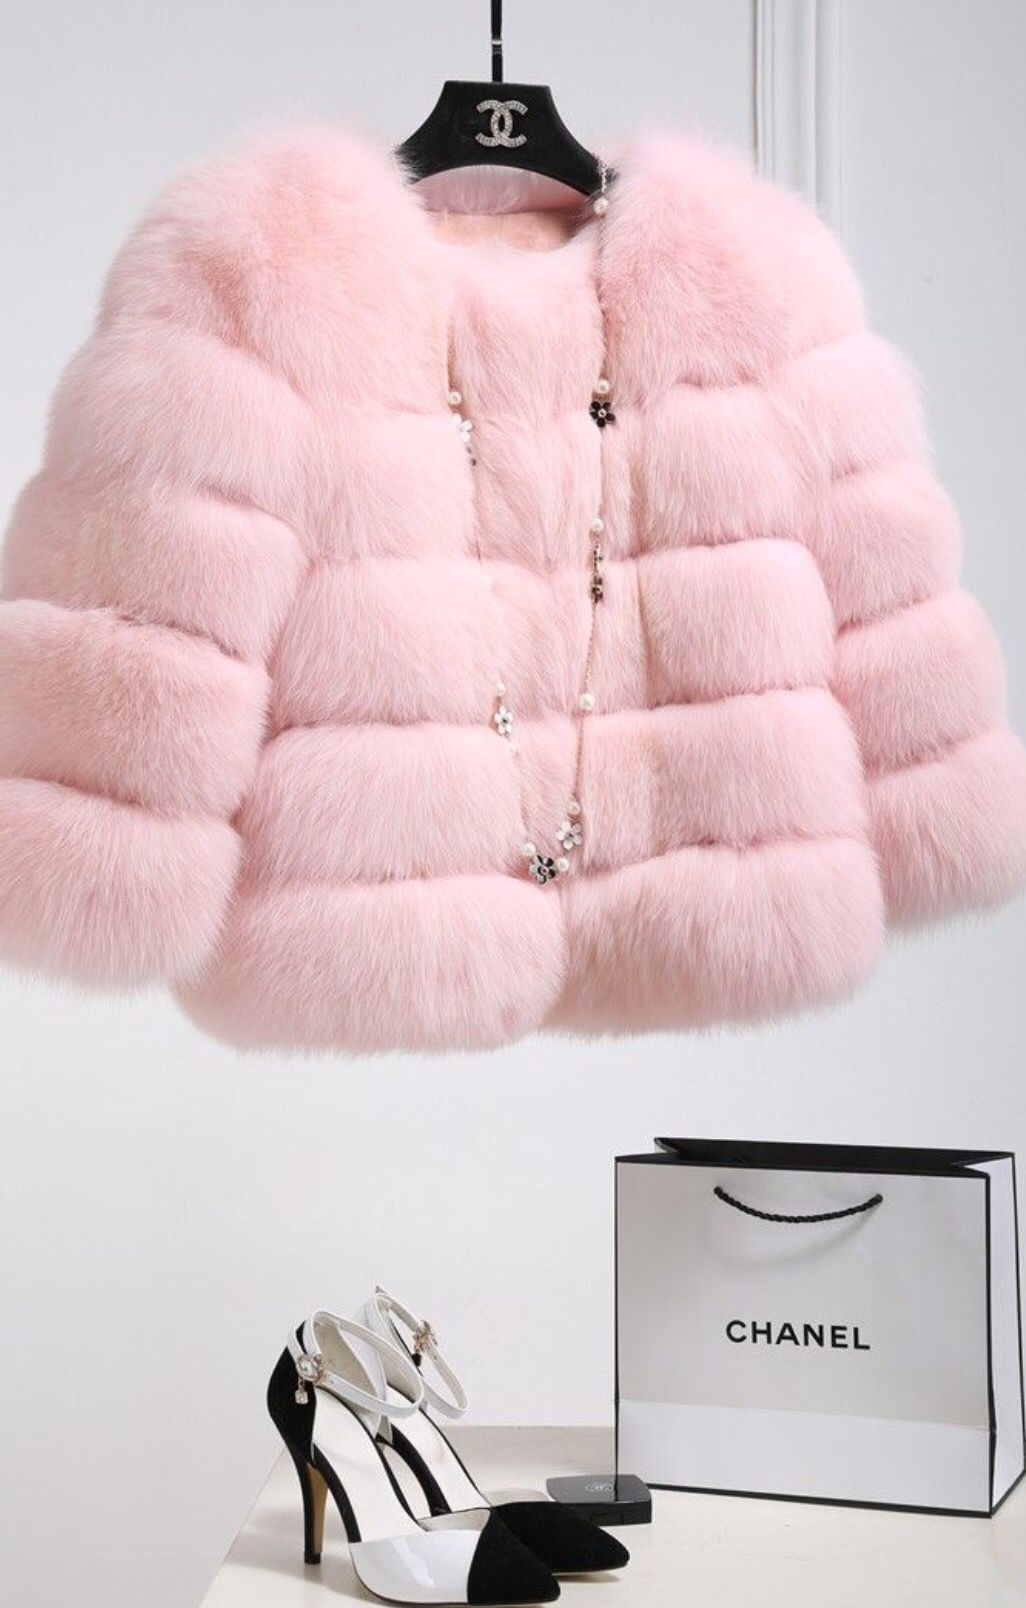 Baby Pink Chanel Jacket Aesthetic The Chanels